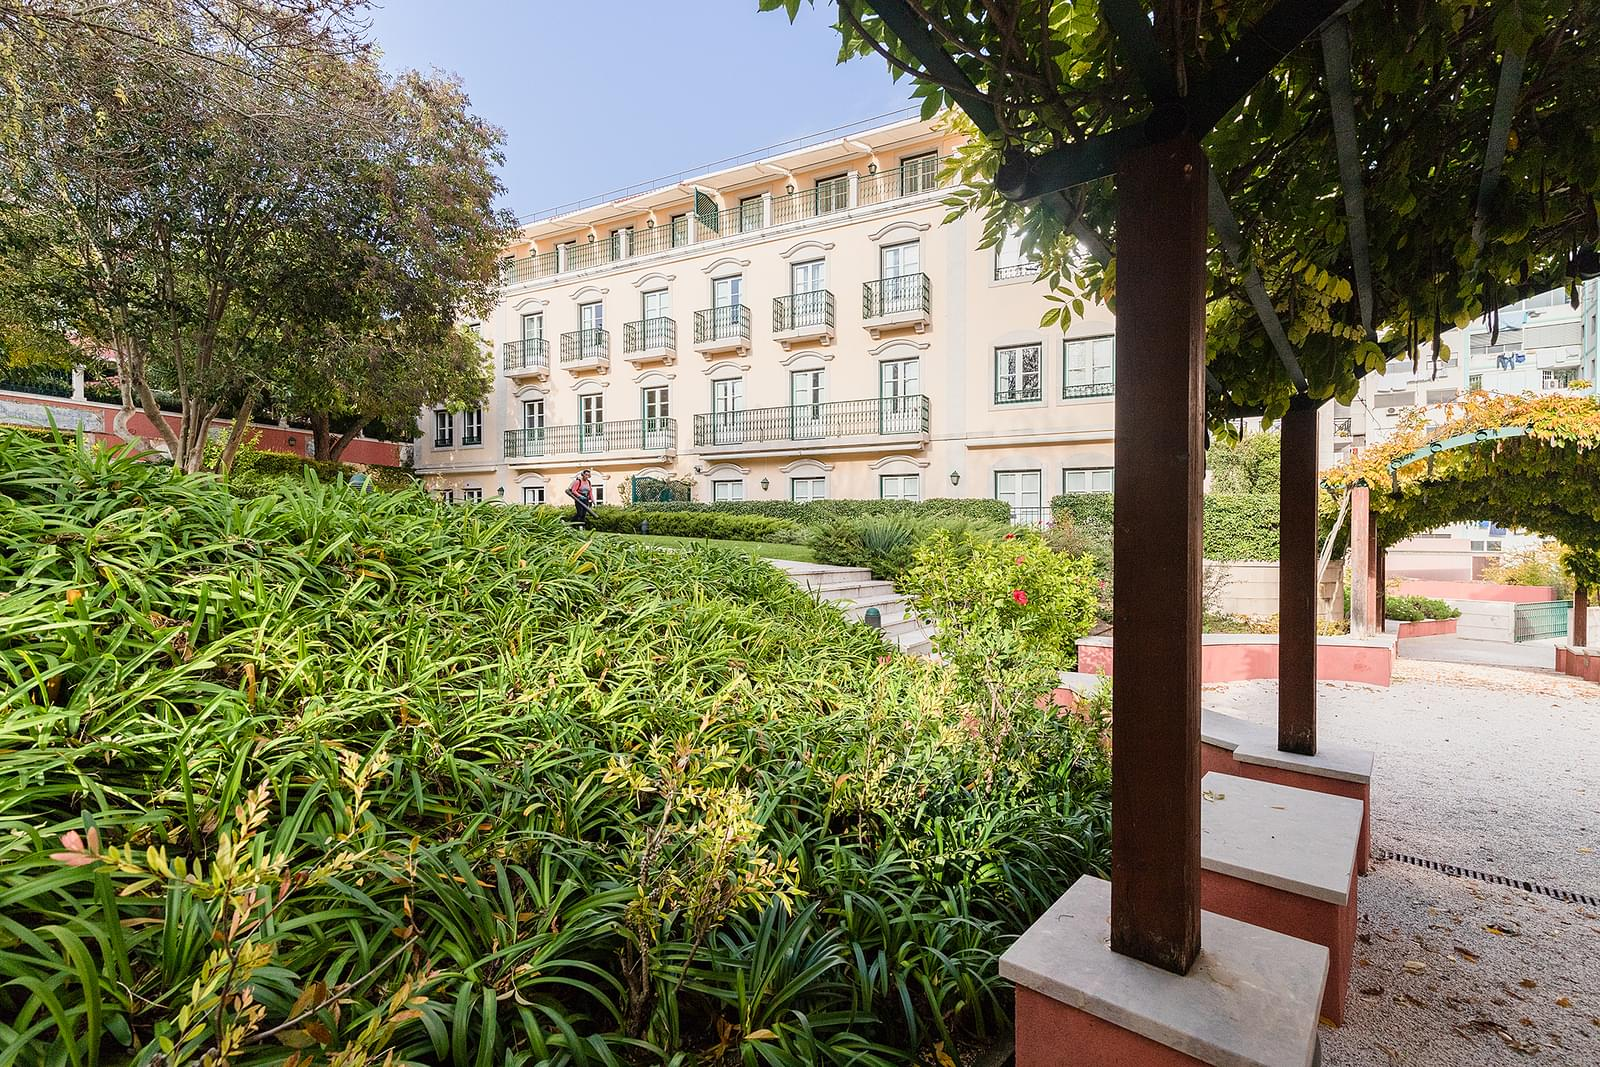 4 bedroom apartment with parking in gated community